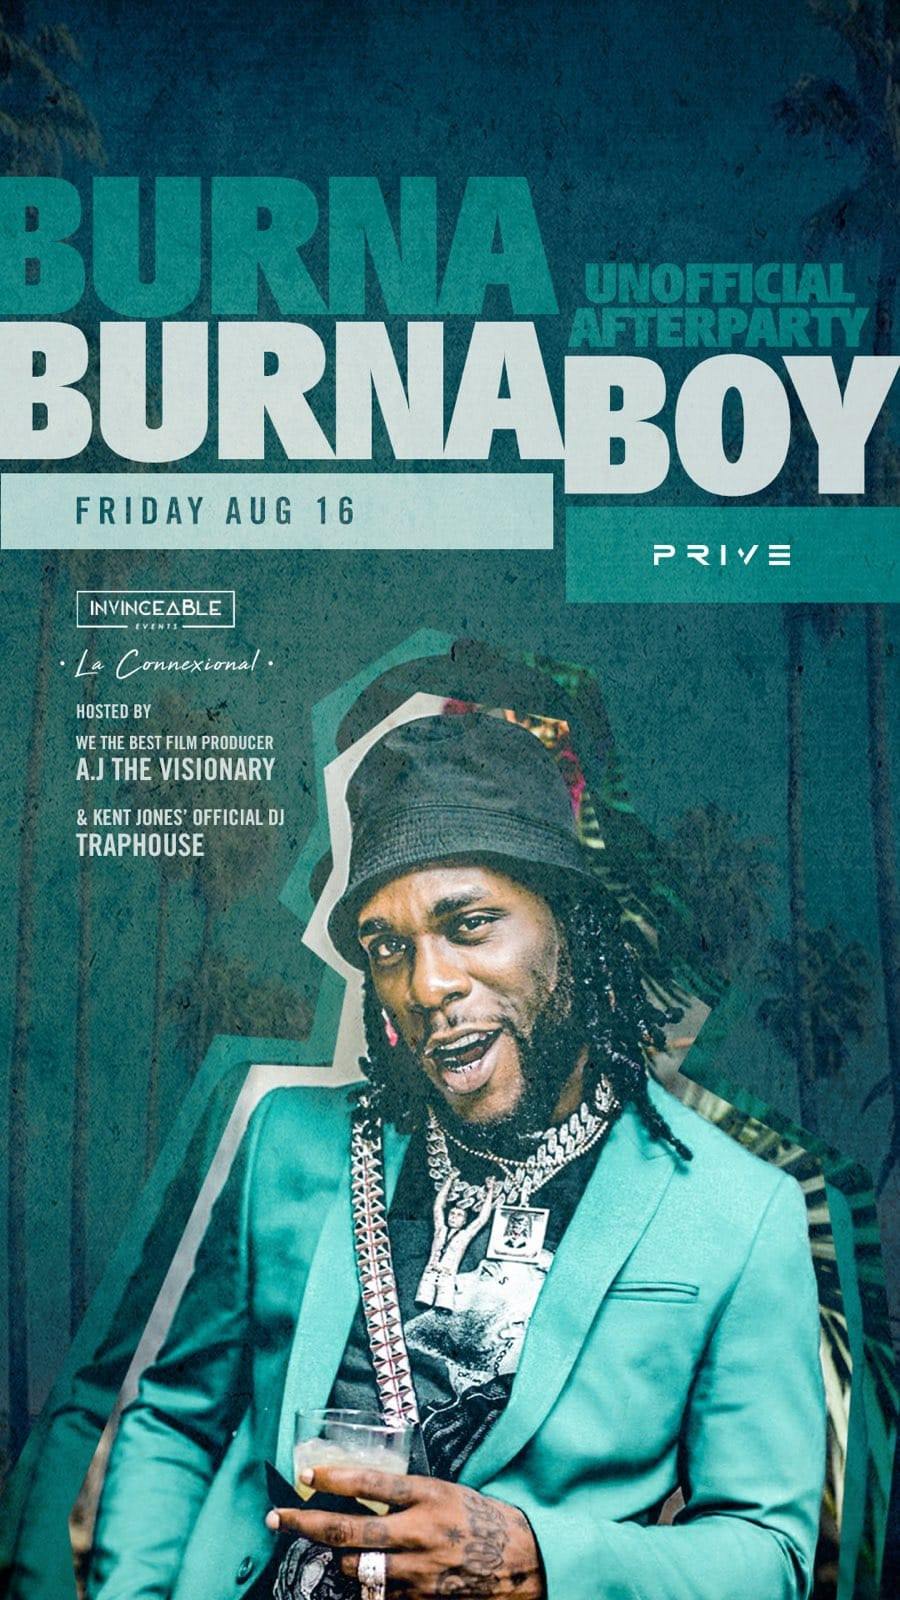 Burnaboy Unofficial After Party